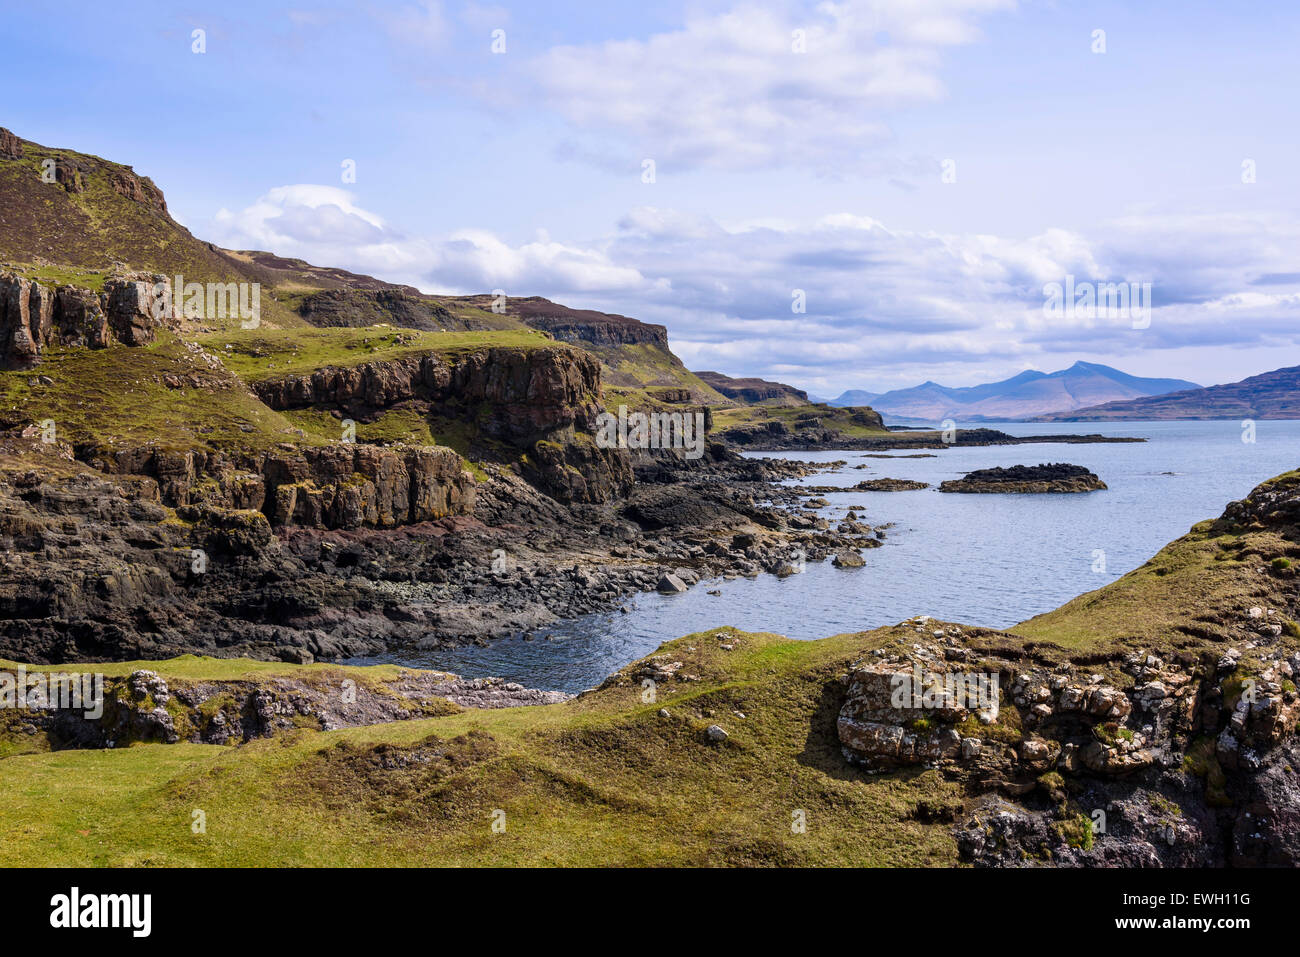 Cliffs around Treshnish Point, Isle of Mull, Hebrides, Argyll and Bute, Scotland - Stock Image